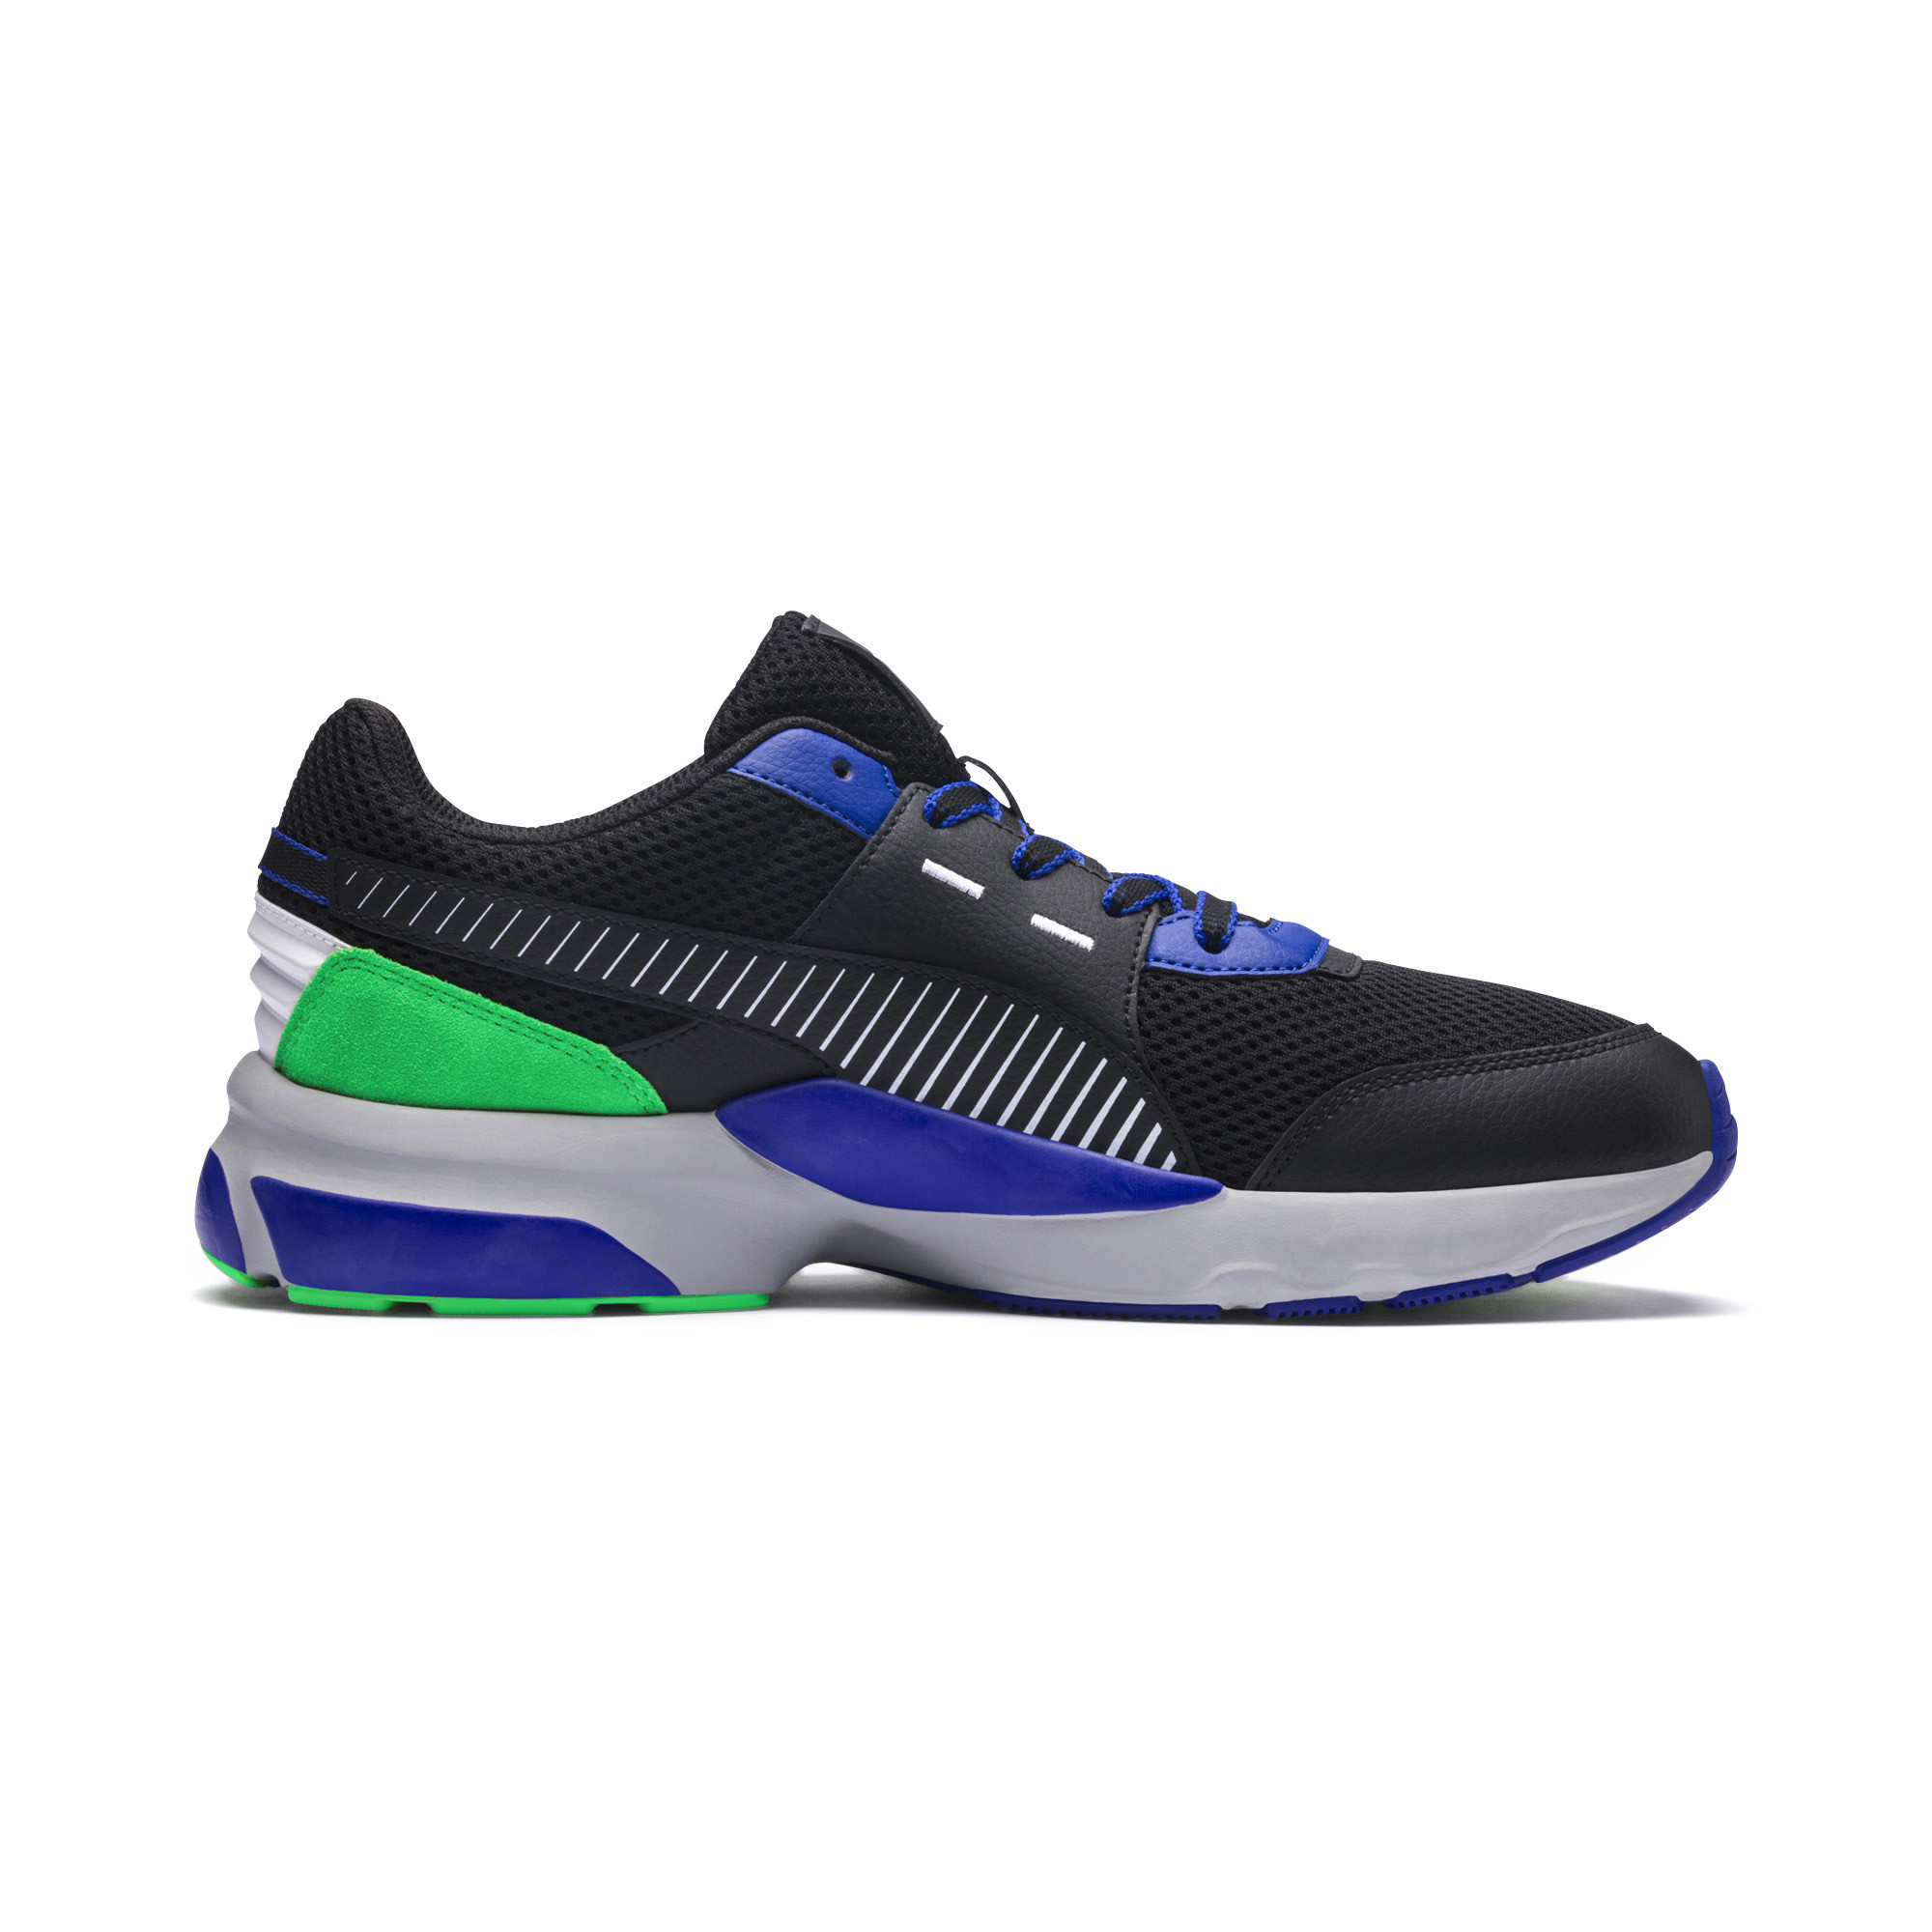 PUMA-Future-Runner-Premium-Men-039-s-Running-Shoes-Men-Shoe-Basics thumbnail 12